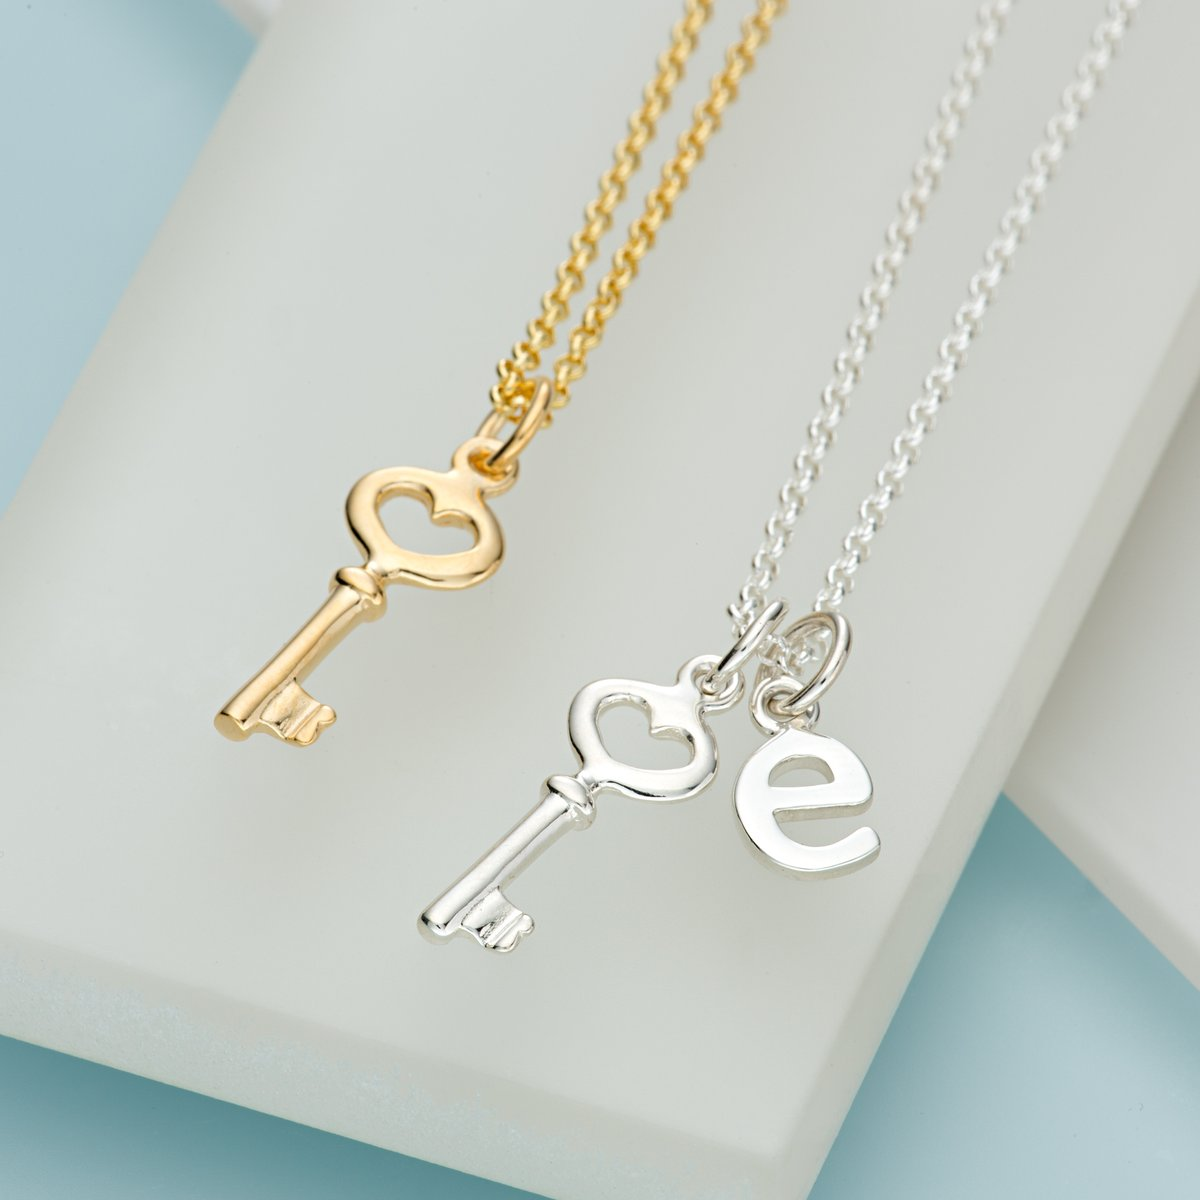 Key jewellery, the most appropriate jewellery to send in a lockdown? Perfect for 18th birthdays and all modern day Rapunzels . Keys represent fortune and freedom , and don't we all yearn for that! http://ow.ly/7co050z4r0g #lockdown #keynecklace #padlock#recycledsilver pic.twitter.com/sfVkWQpW6w